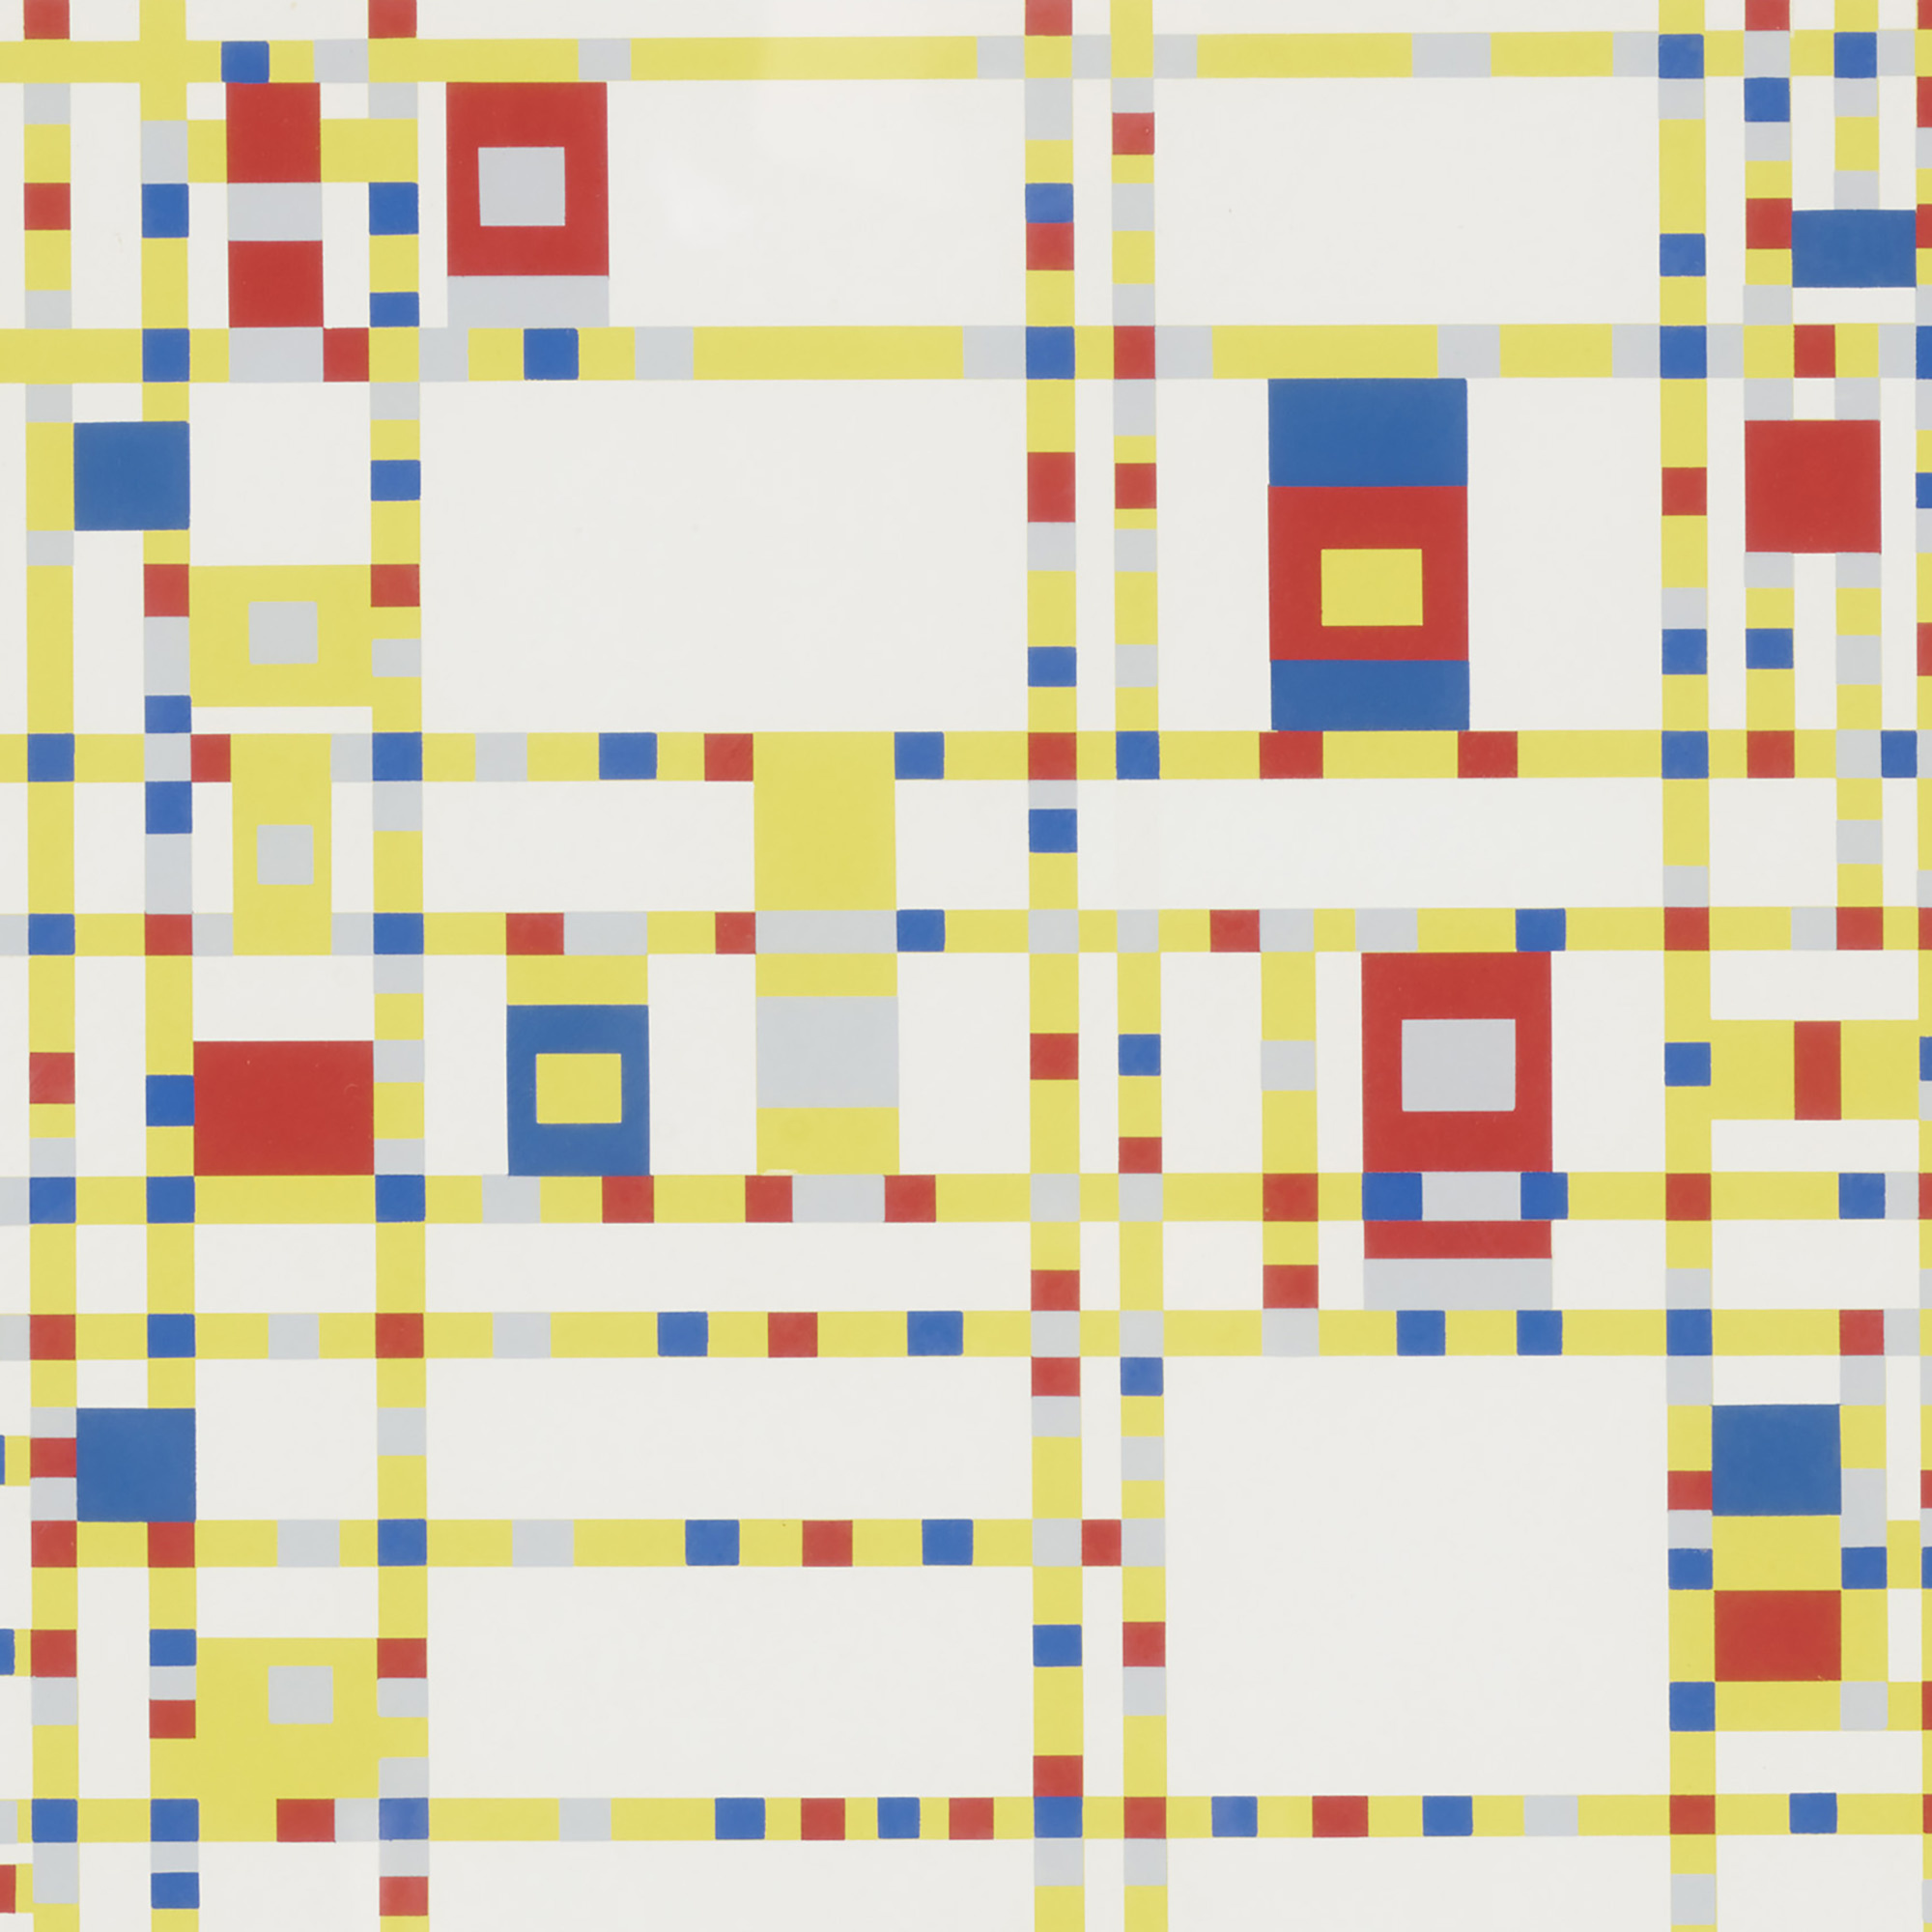 264: AFTER PIET MONDRIAN, Broadway Boogie-Woogie < Florsheim ...